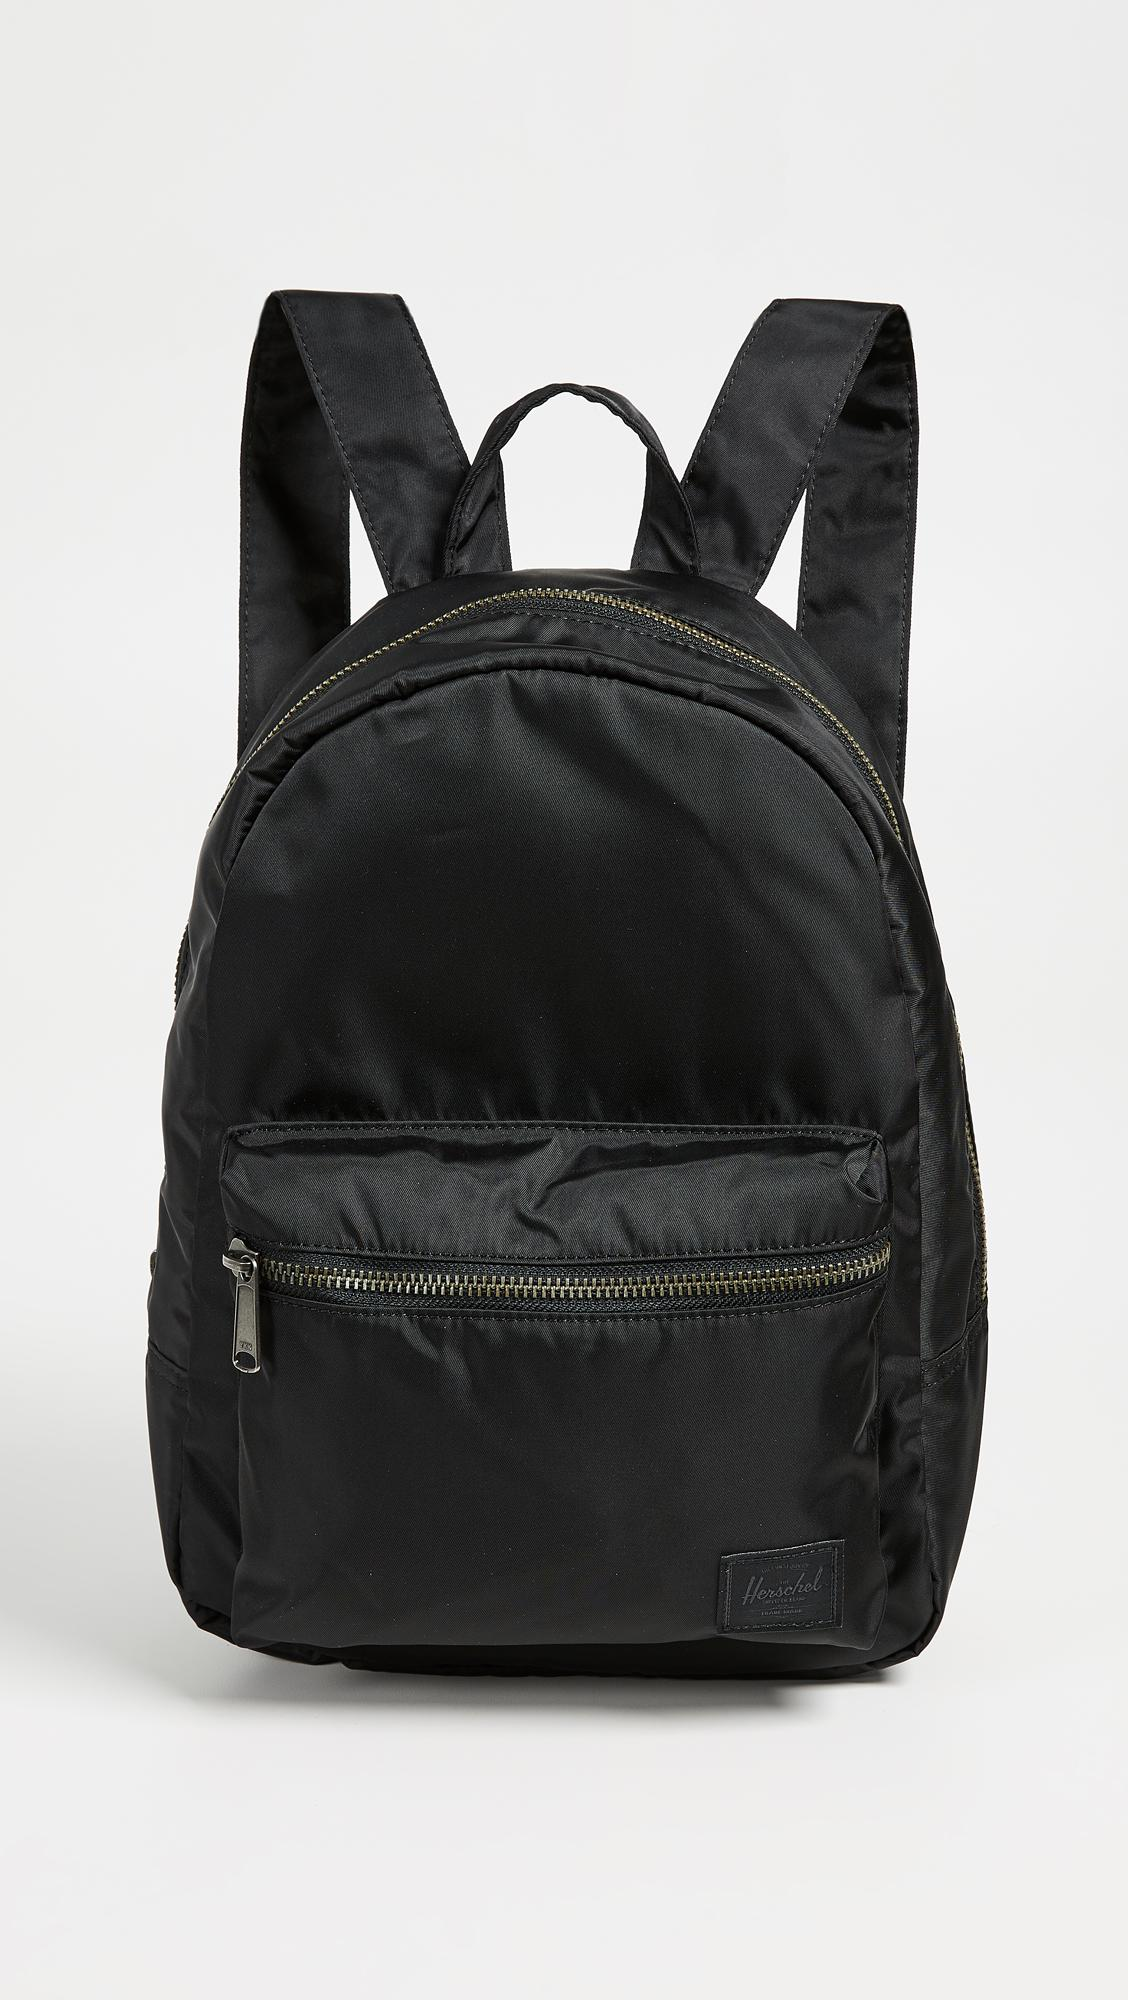 Lyst - Herschel Supply Co. Flight Satin Grove X Small Backpack in Black 6f0a012dc1